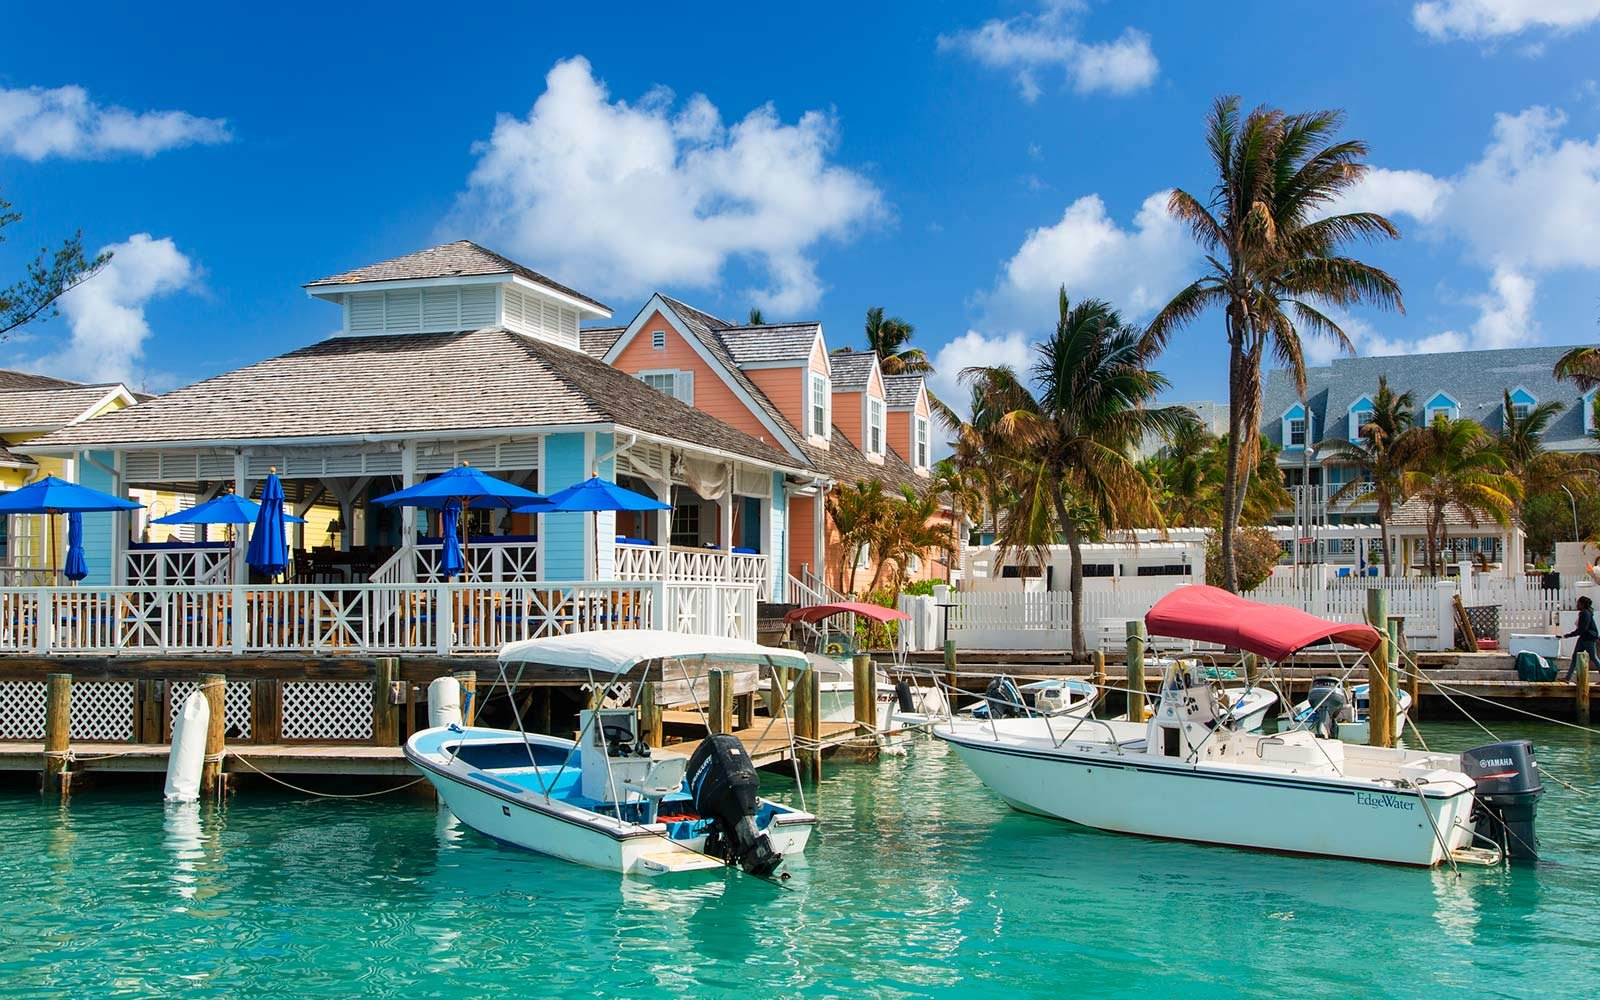 The 2017 World S Best Islands In The Caribbean Bermuda And The Bahamas Travel Leisure